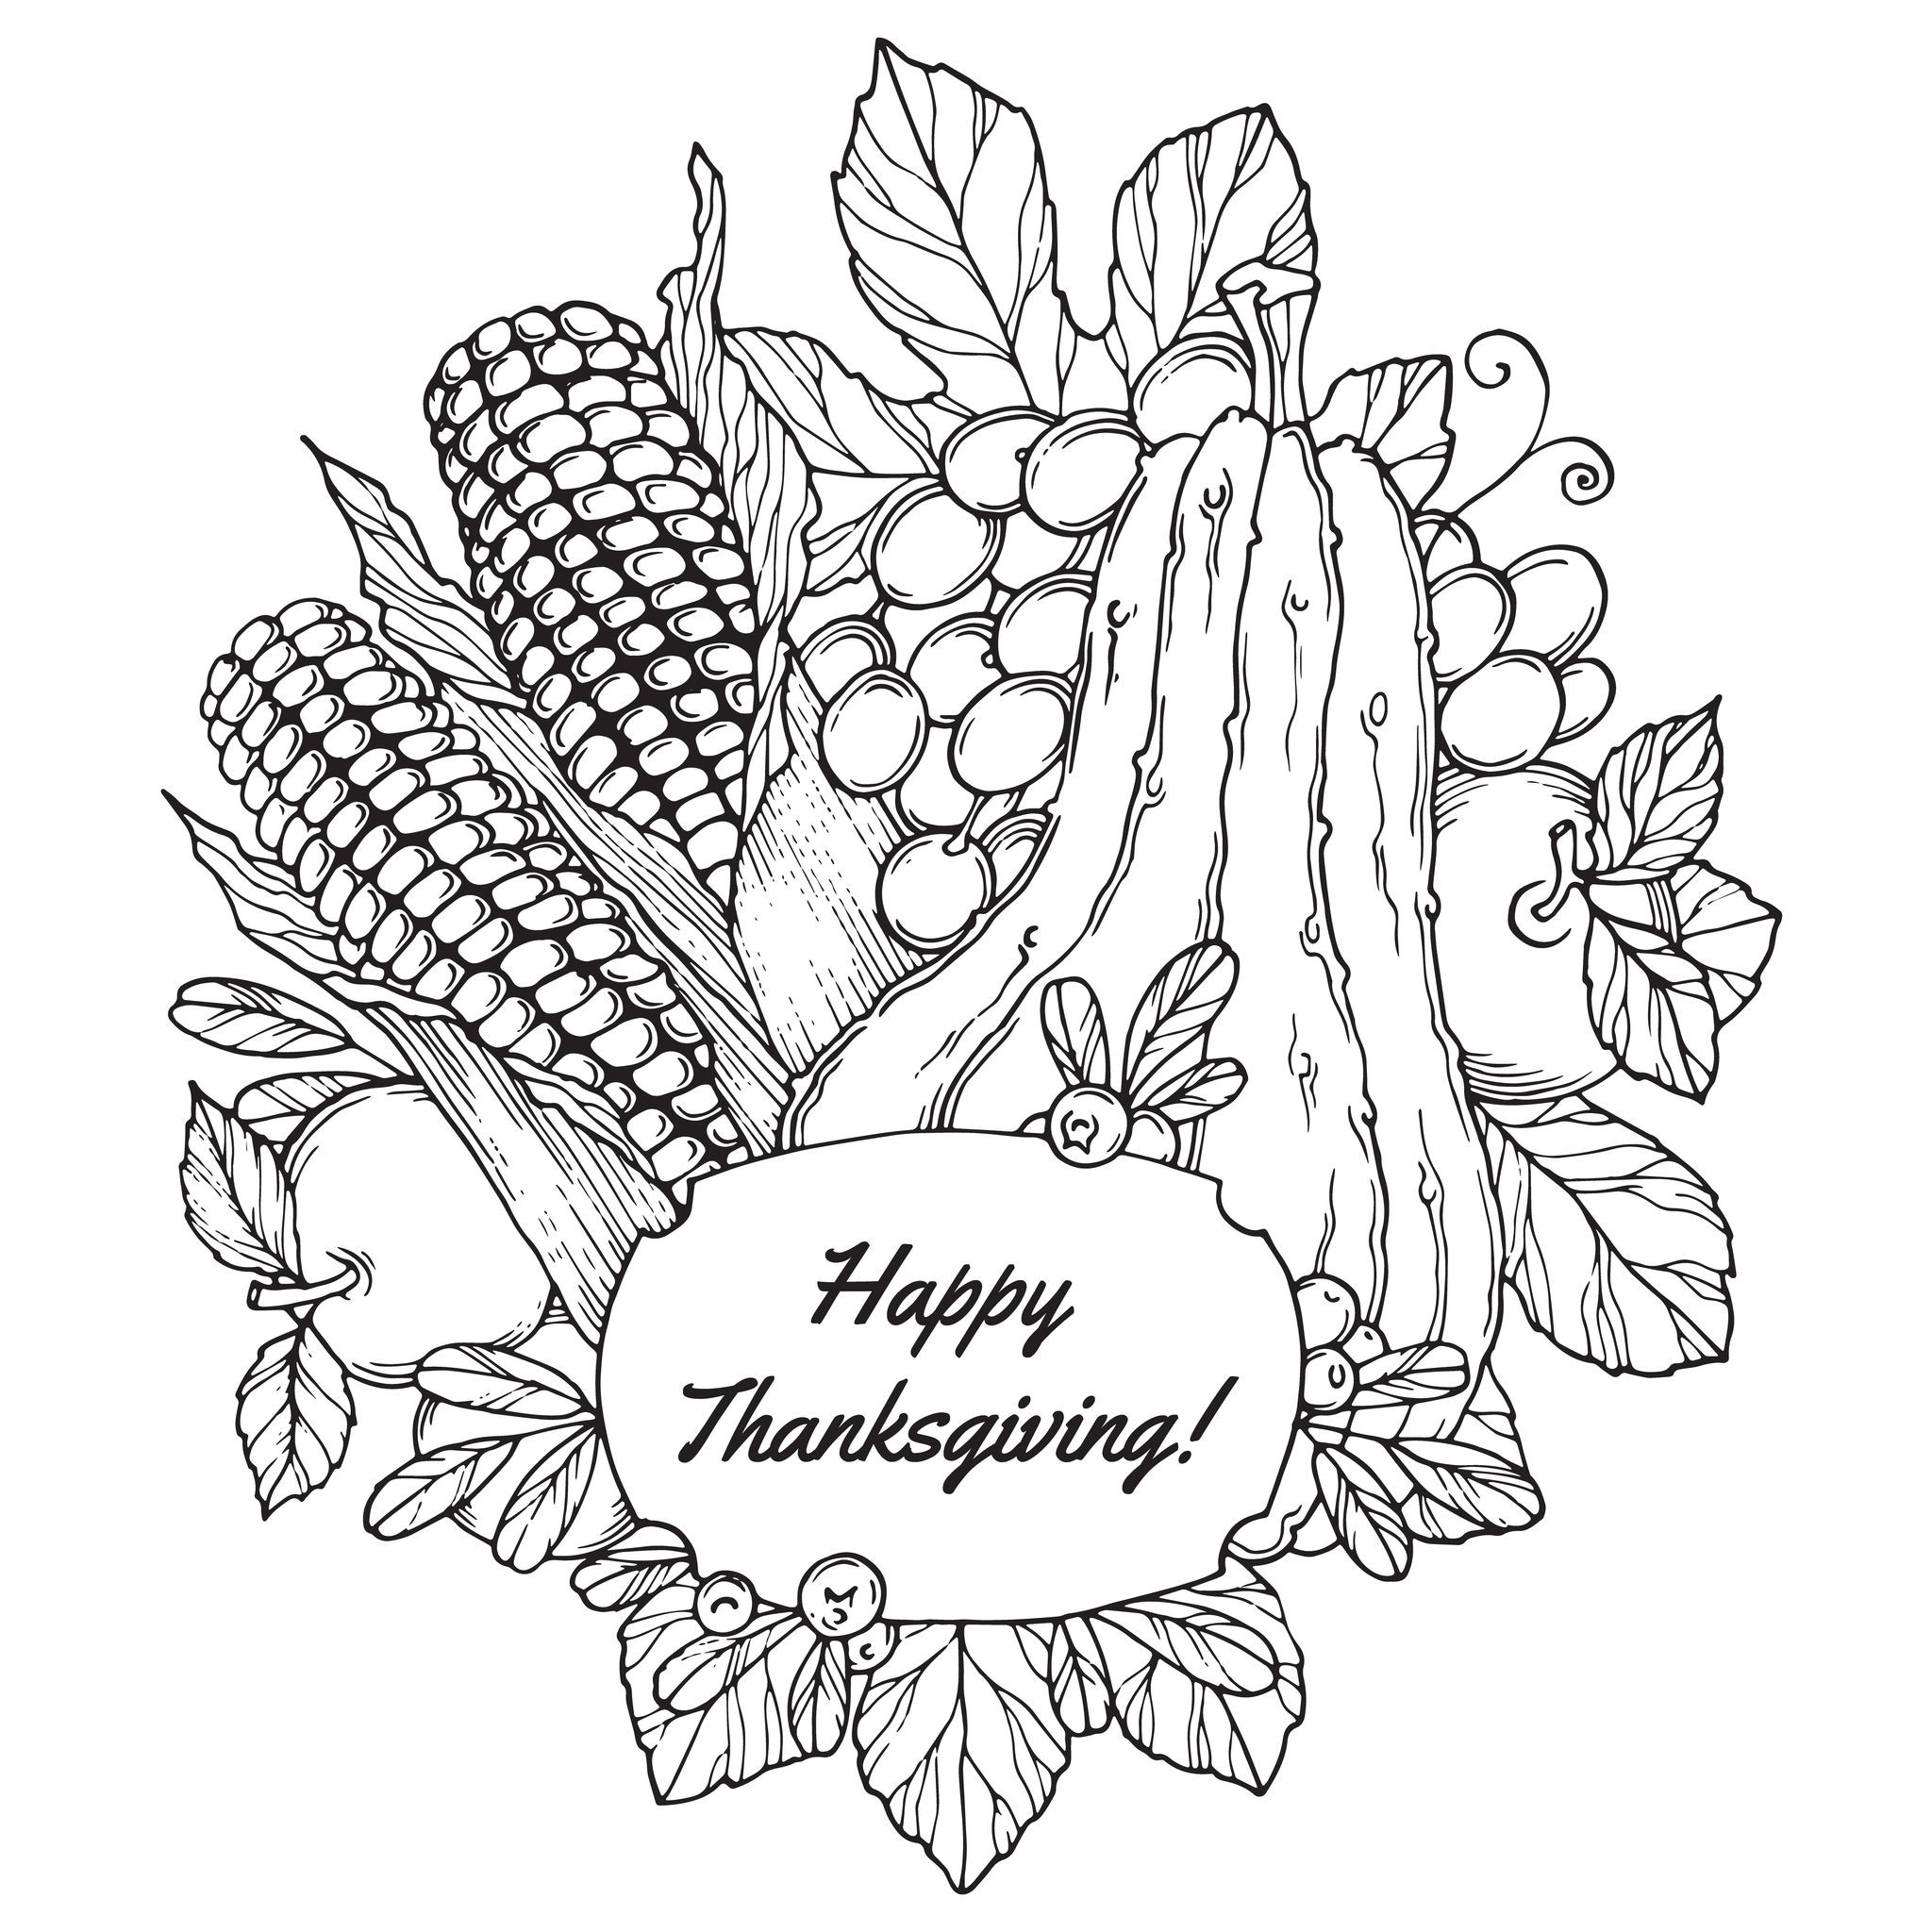 Best ideas about Free Coloring Sheets On Gratutude . Save or Pin Thanksgiving Coloring Pages For Adults to and Now.